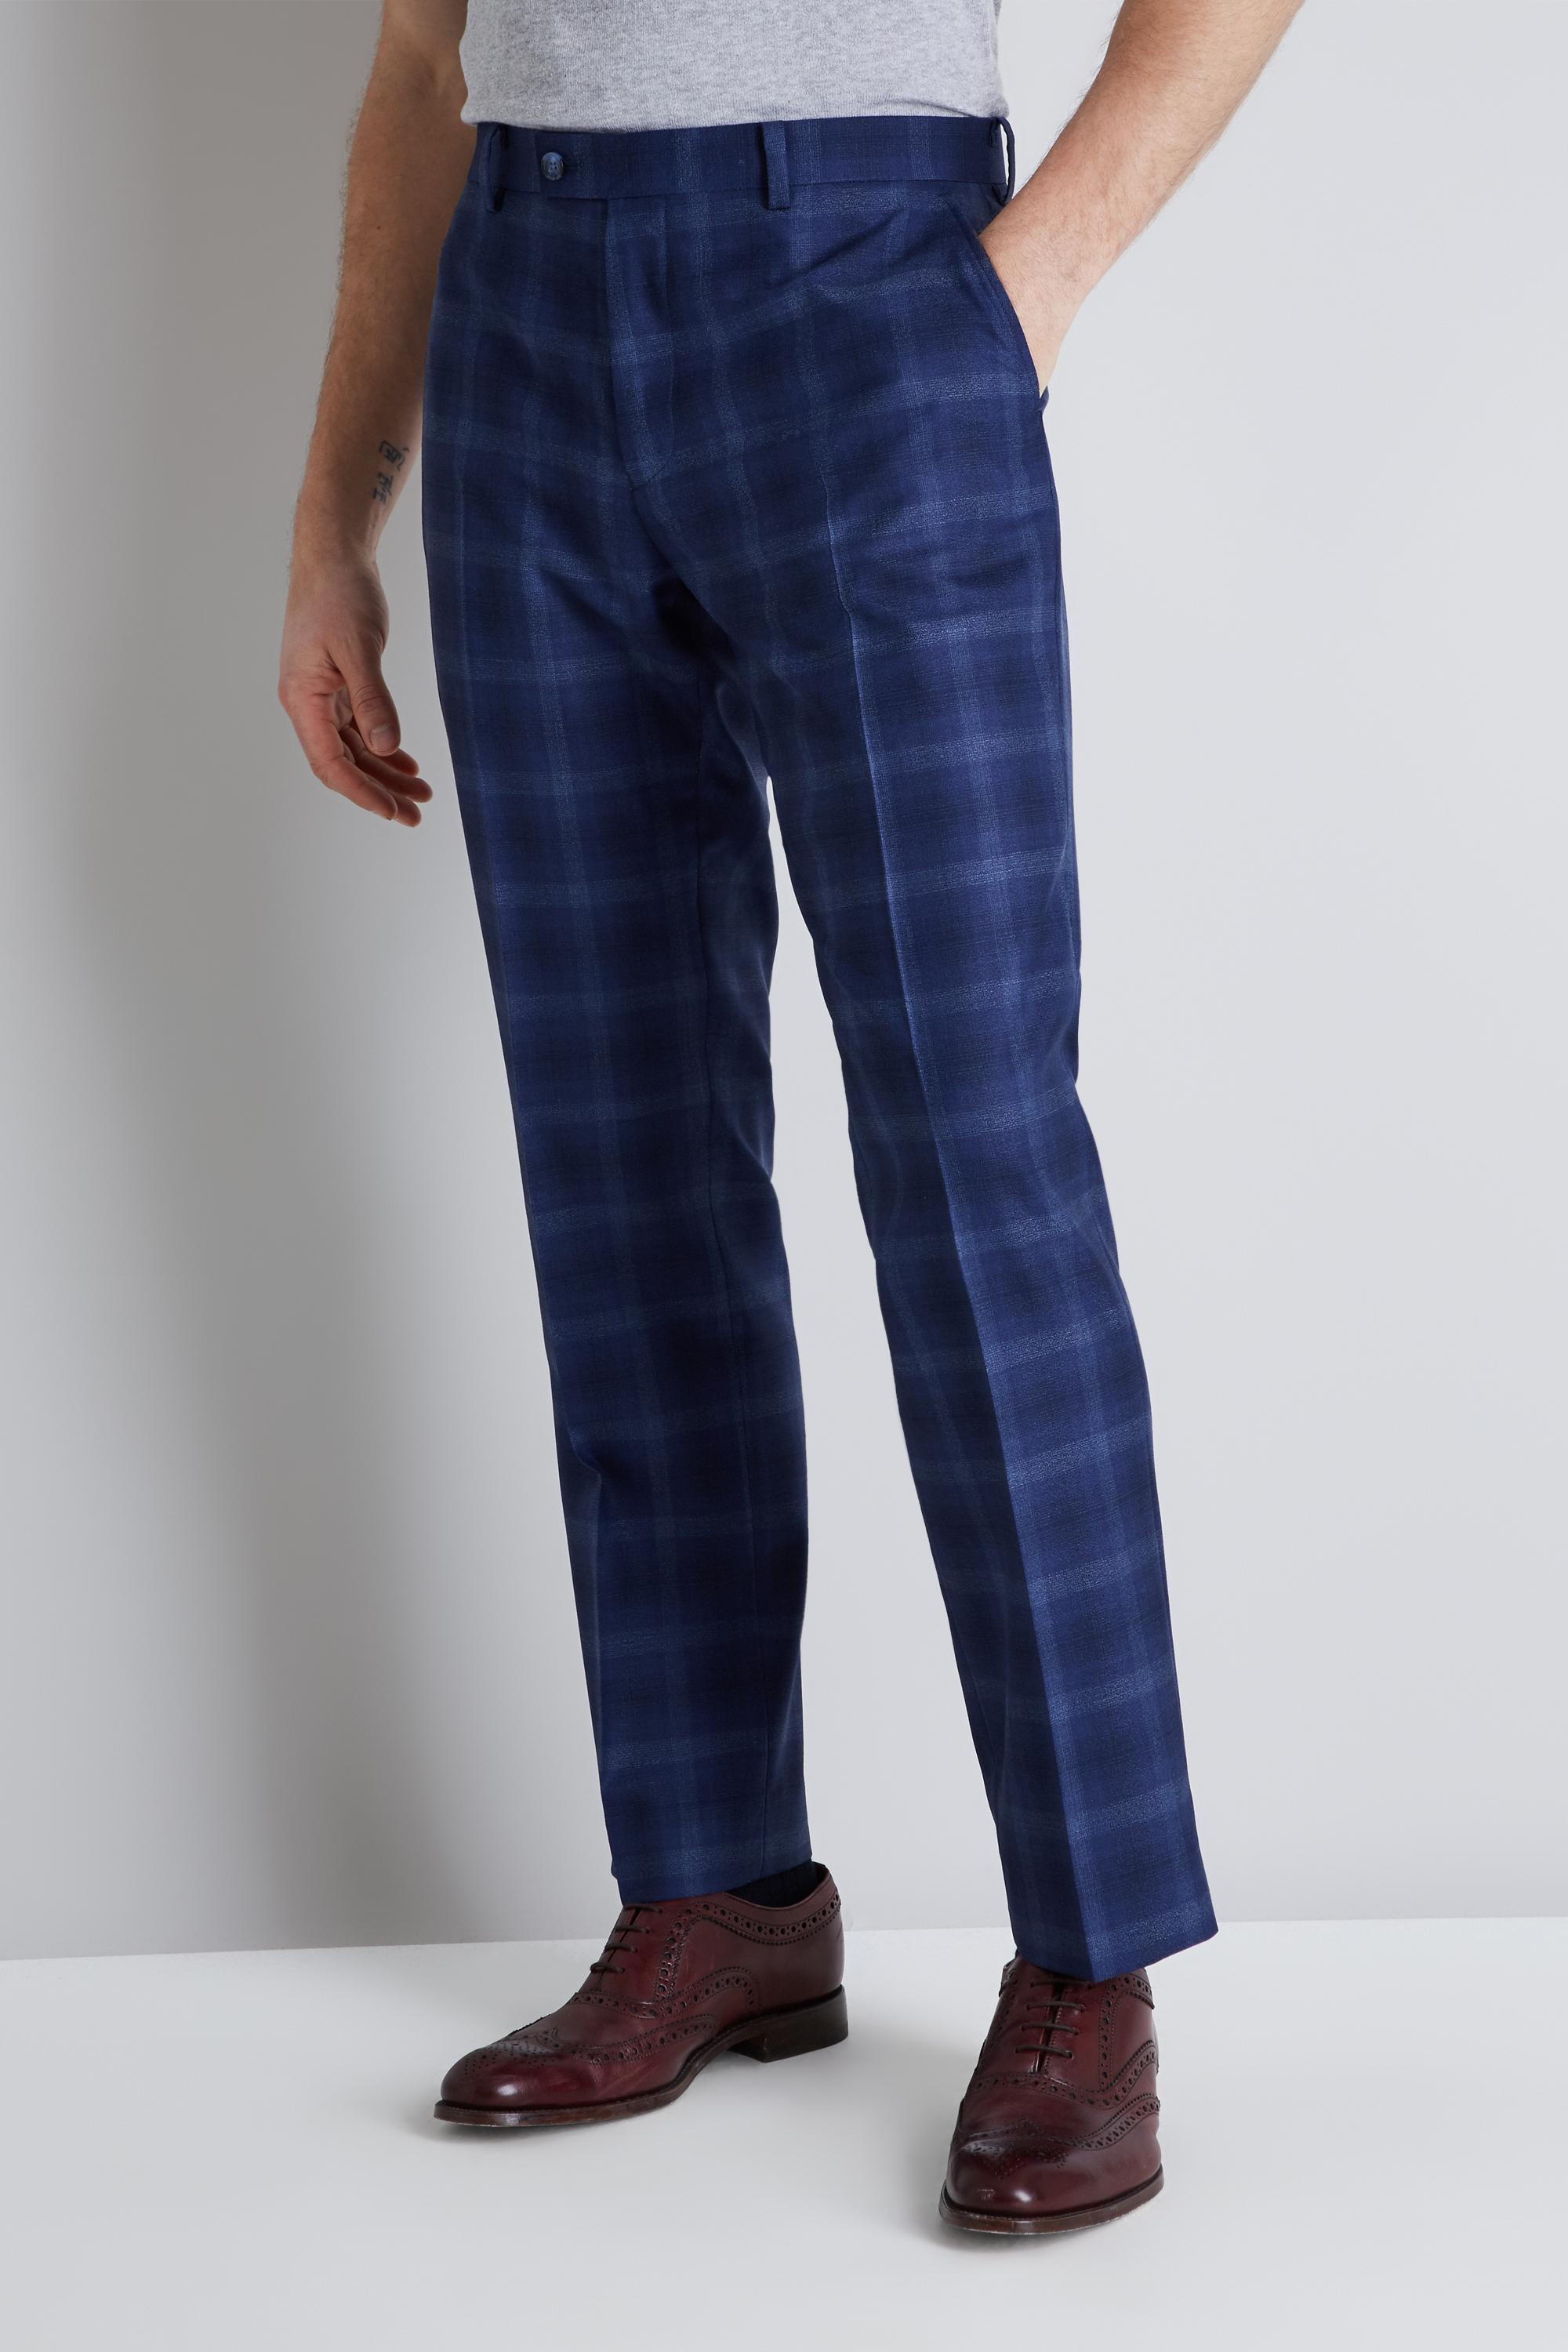 09be608f2e8a Lyst - Ted Baker Tailored Fit Blue Bold Check Trousers in Blue for Men